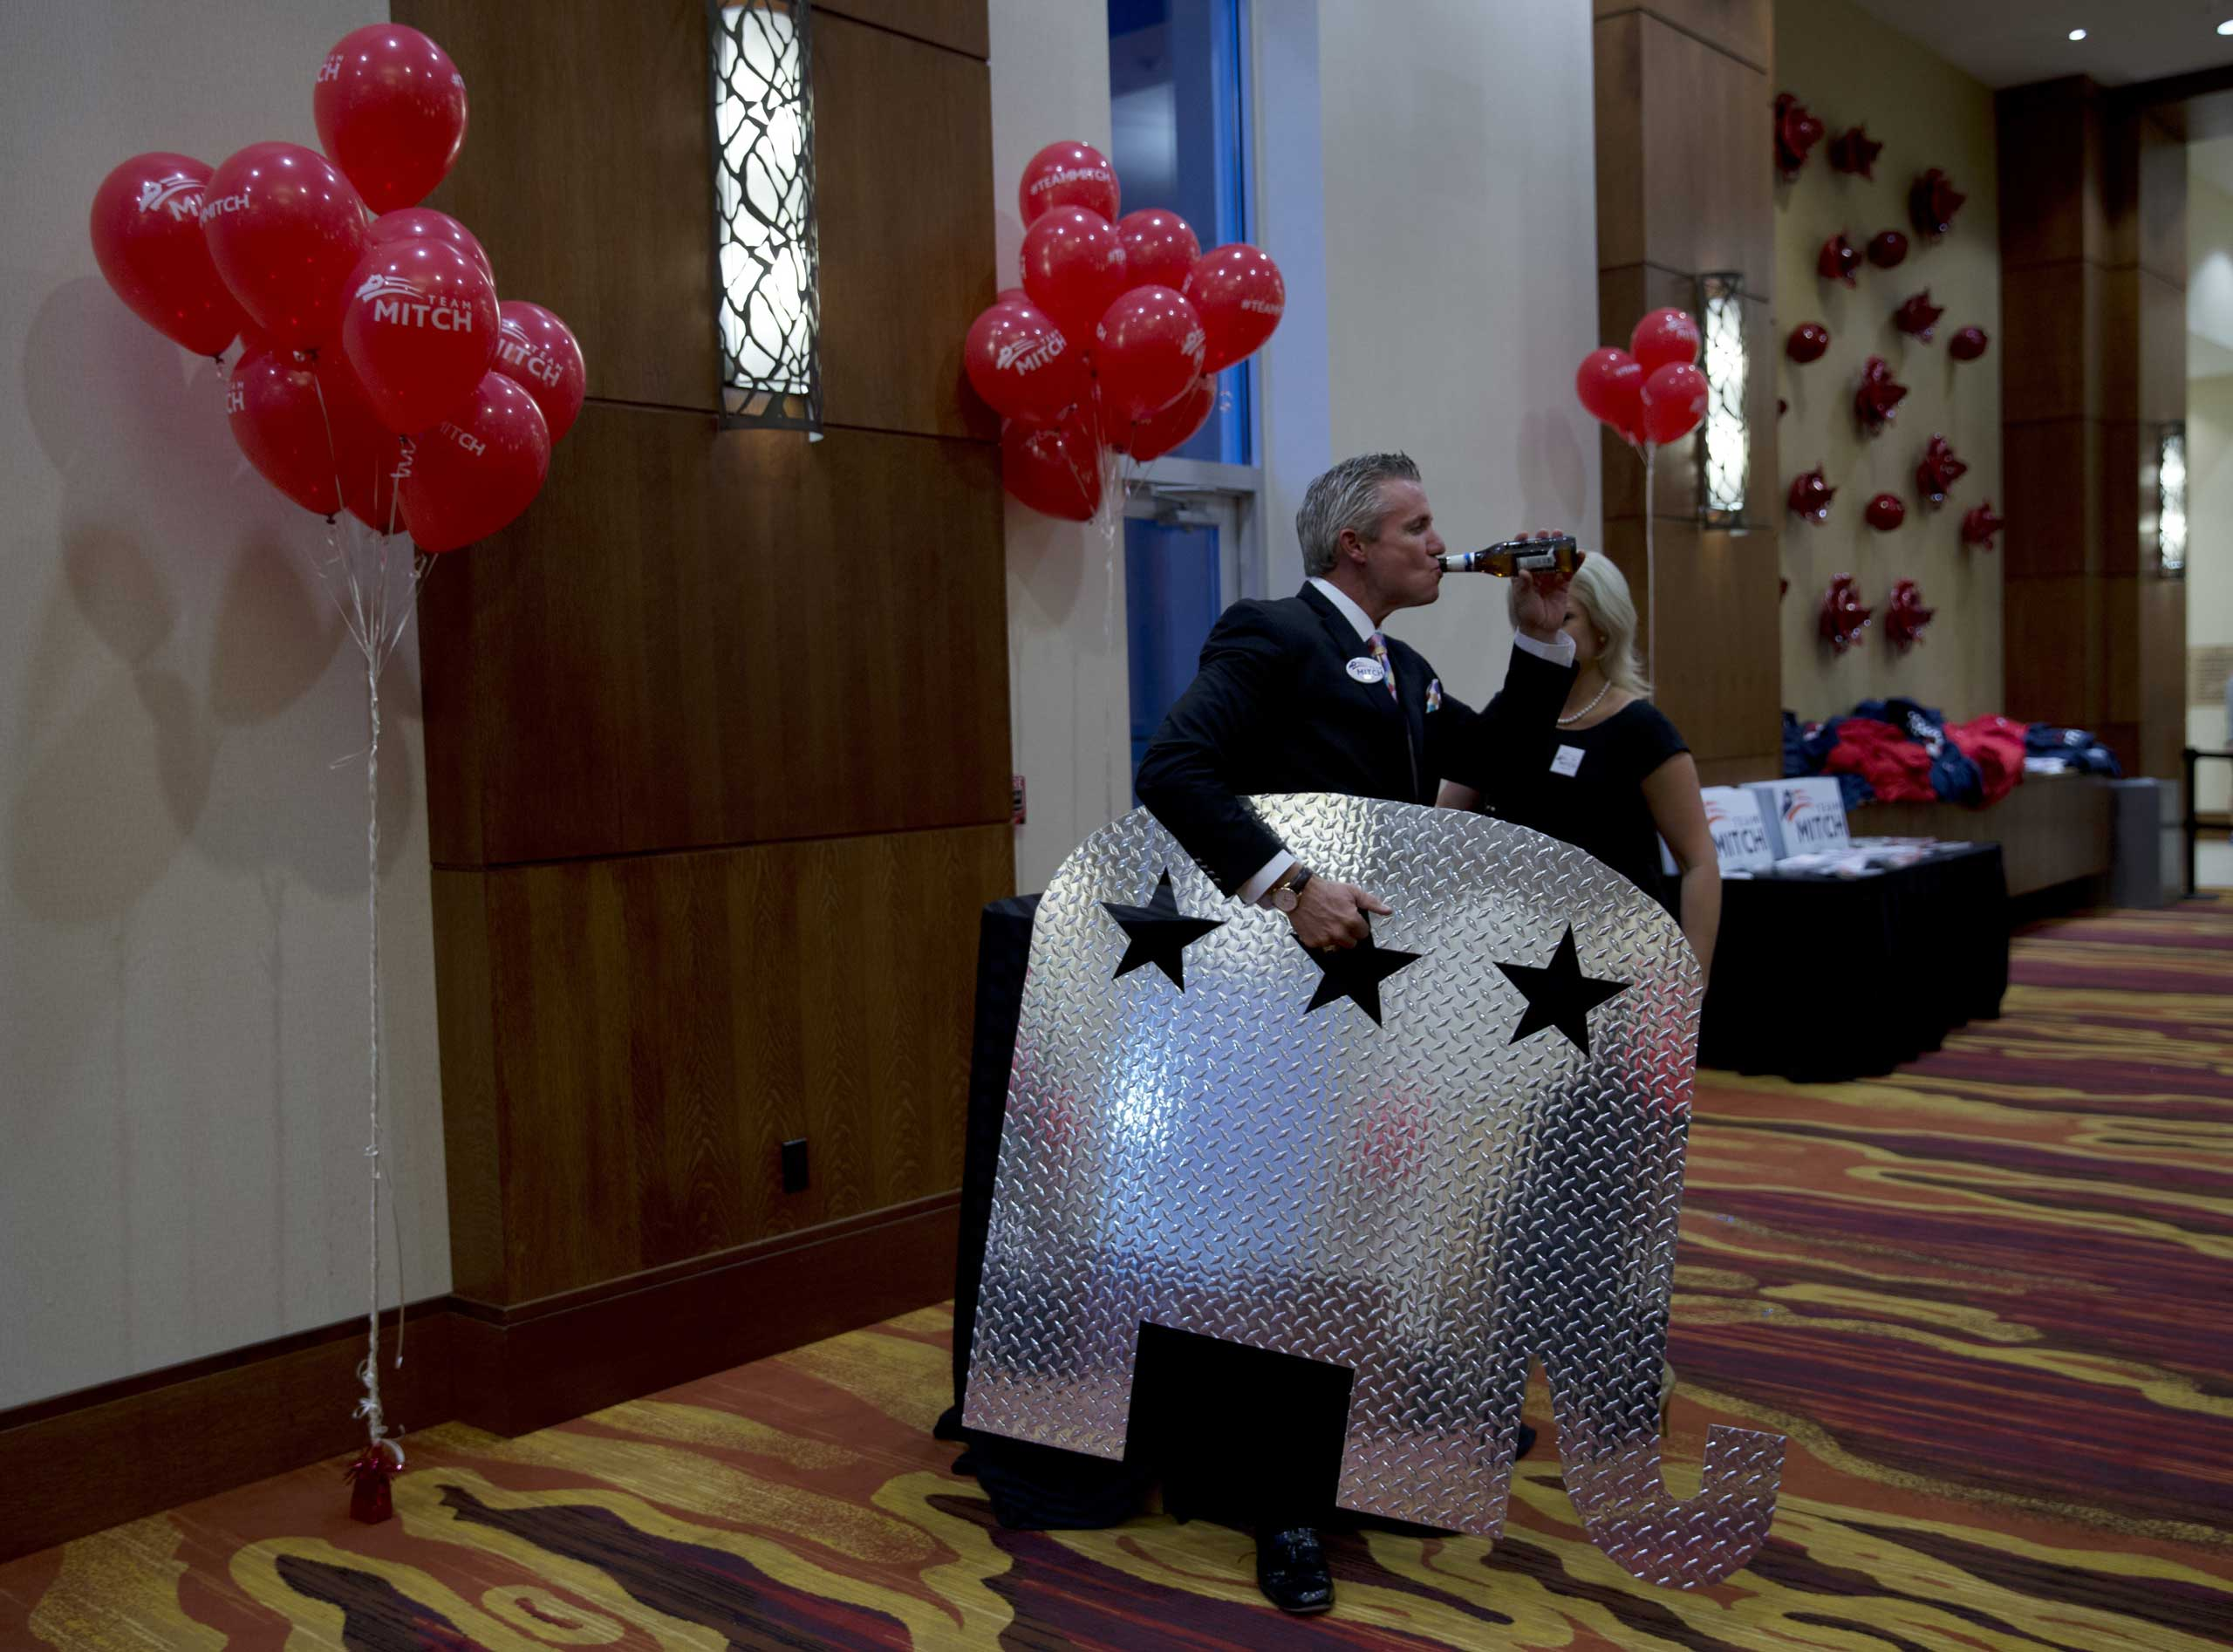 Nov. 4, 2014. Winning campaign Supporters gather at a hotel in Louisville, Ky., to celebrate Mitch McConnell's victory. From  GOP Wave: How Mitch McConnell Won the Day.  November 17, 2014 issue.